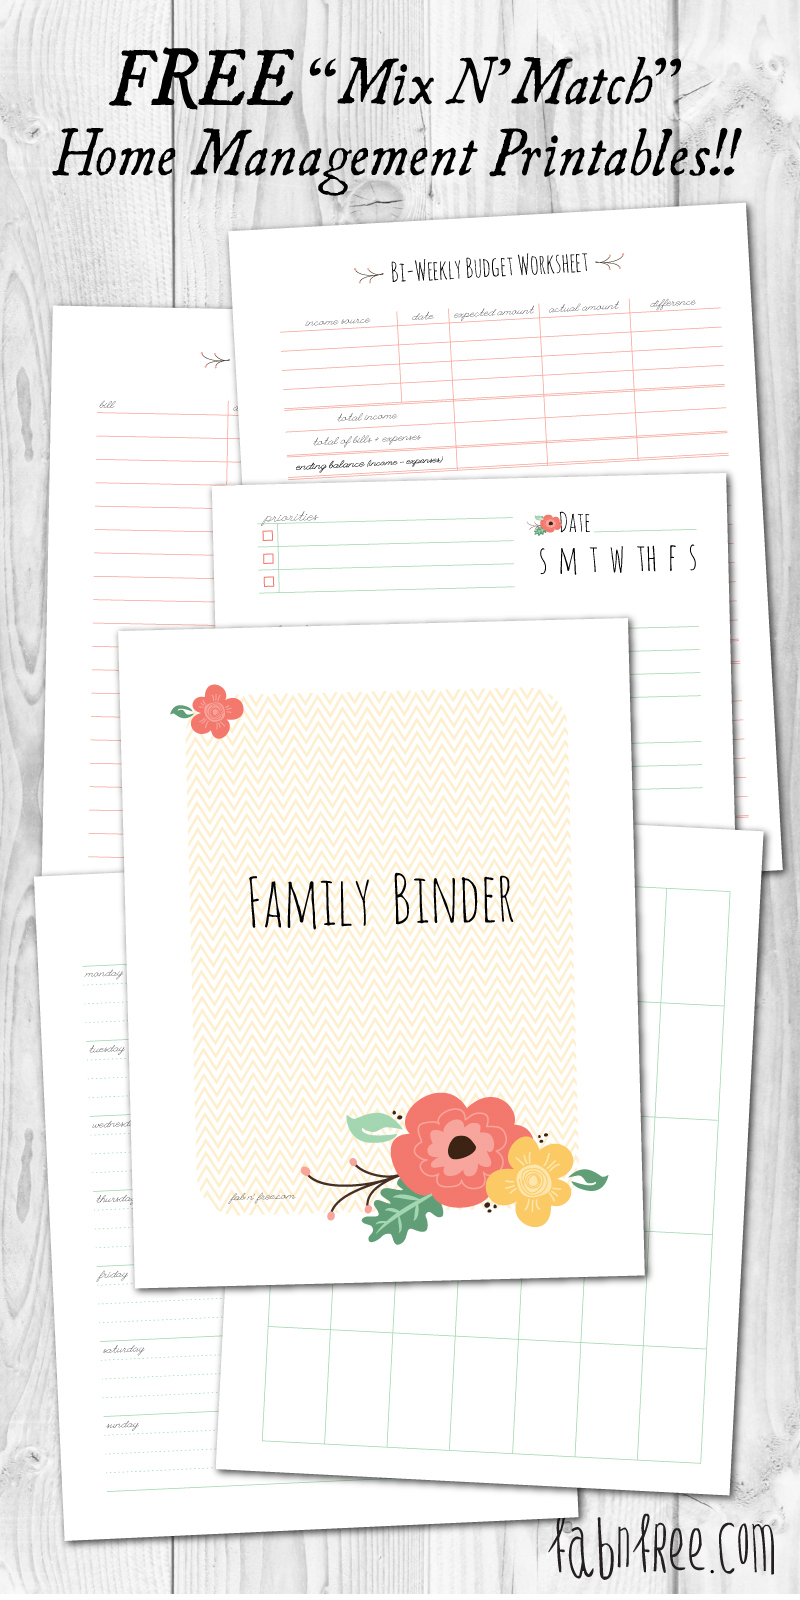 More Than 200 Free Home Management Binder Printables   Fab N' Free - Free Printable Household Binder